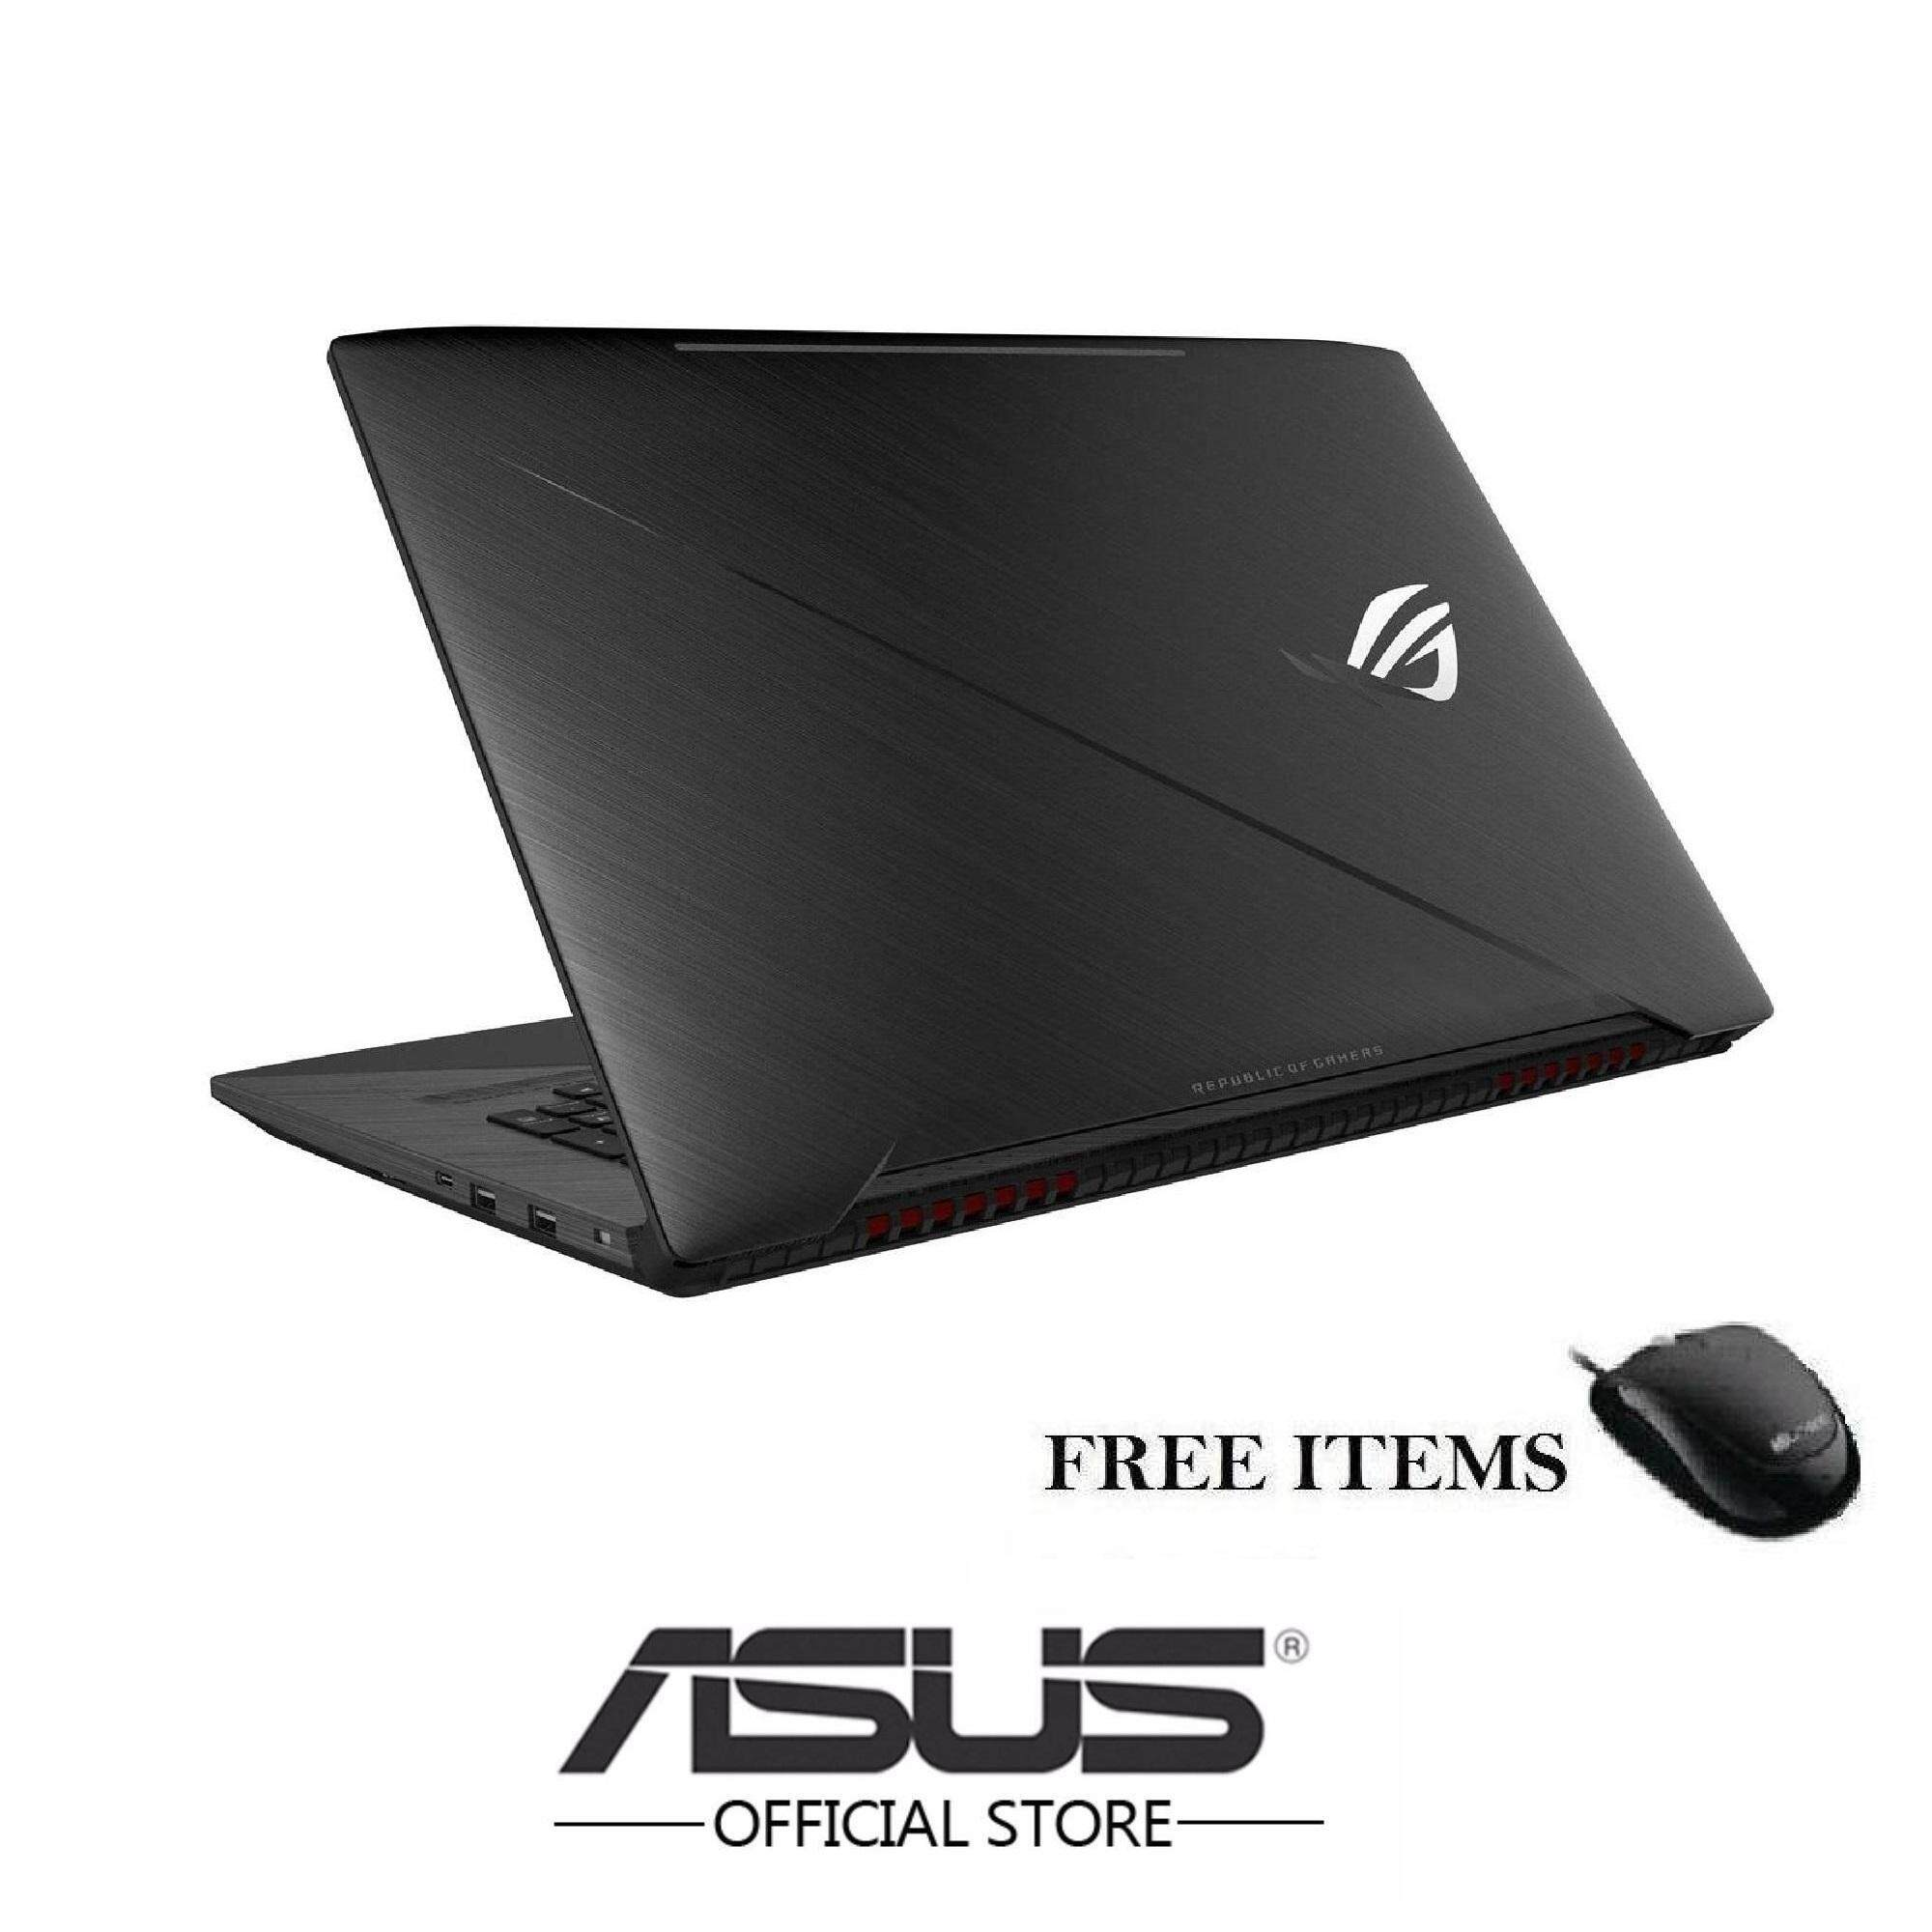 5% RAYA SALE - ASUS ROG 17 INCH STRIX SCAR EDITION GL703 GL703G GL703G-EEE035T / GL703G-ME5029T / GL703G-SE5026T GAMING NOTEBOOK - Free Microsoft Mouse + ROG Ranger Backpack (while stock last) - ( Raya Code Valid Until 4th June ) Malaysia